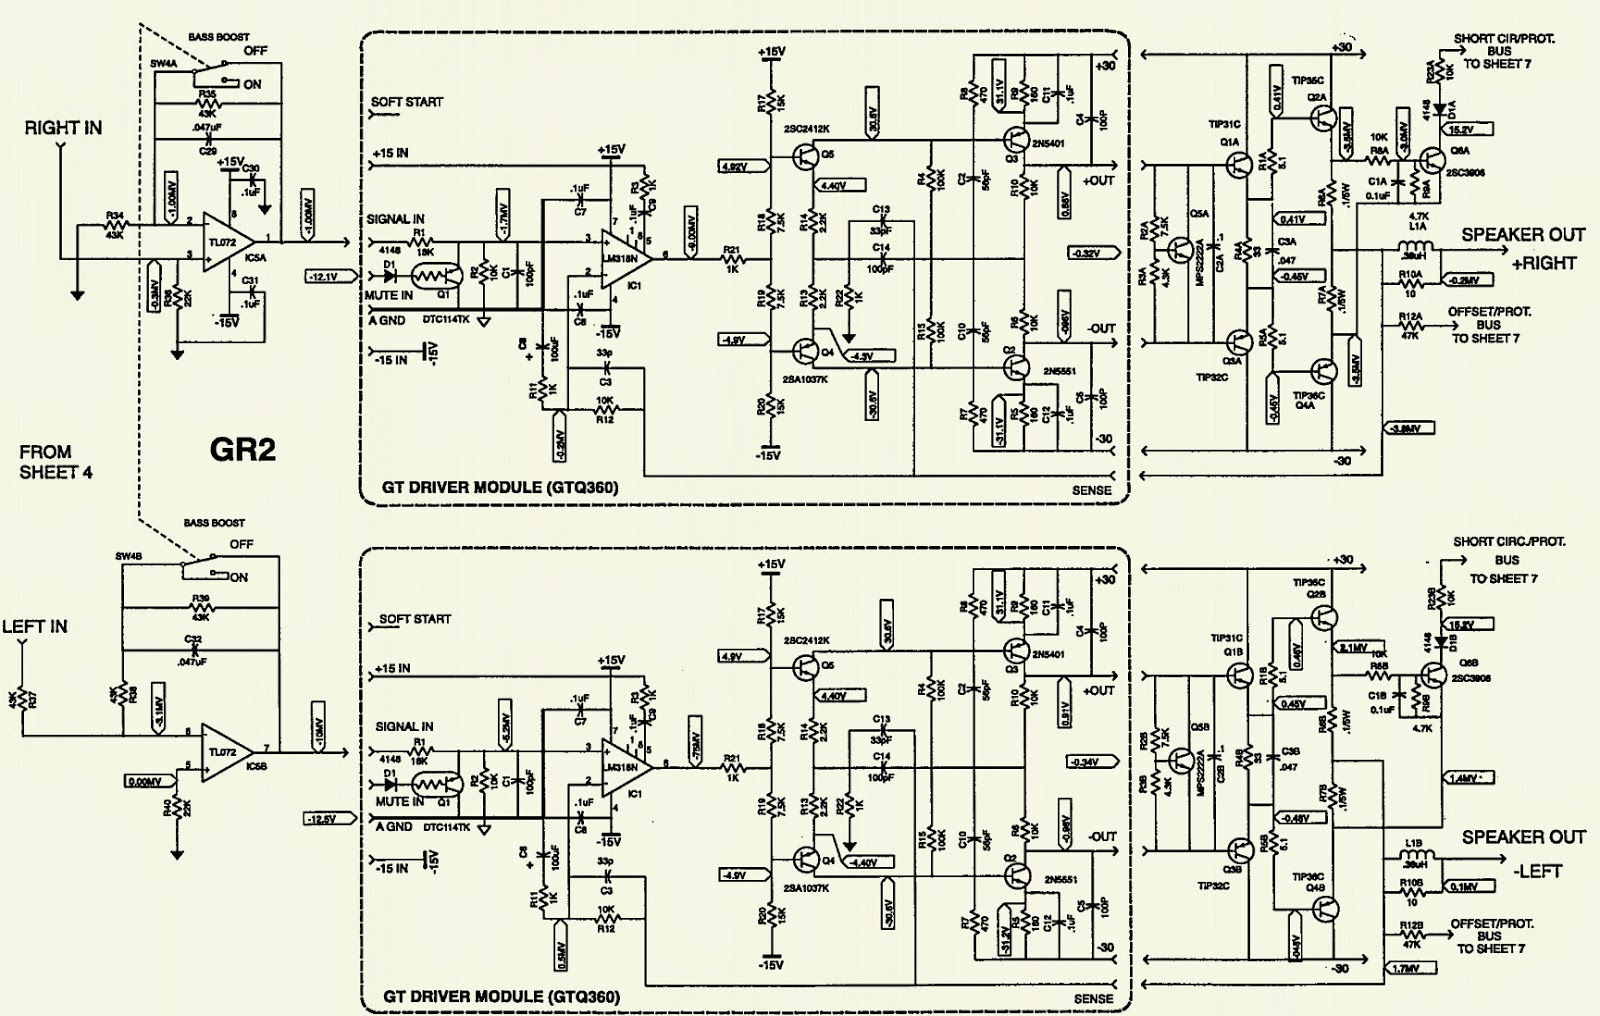 Supply Circuit Diagram Electronic Circuit Schematic Wiring Diagram